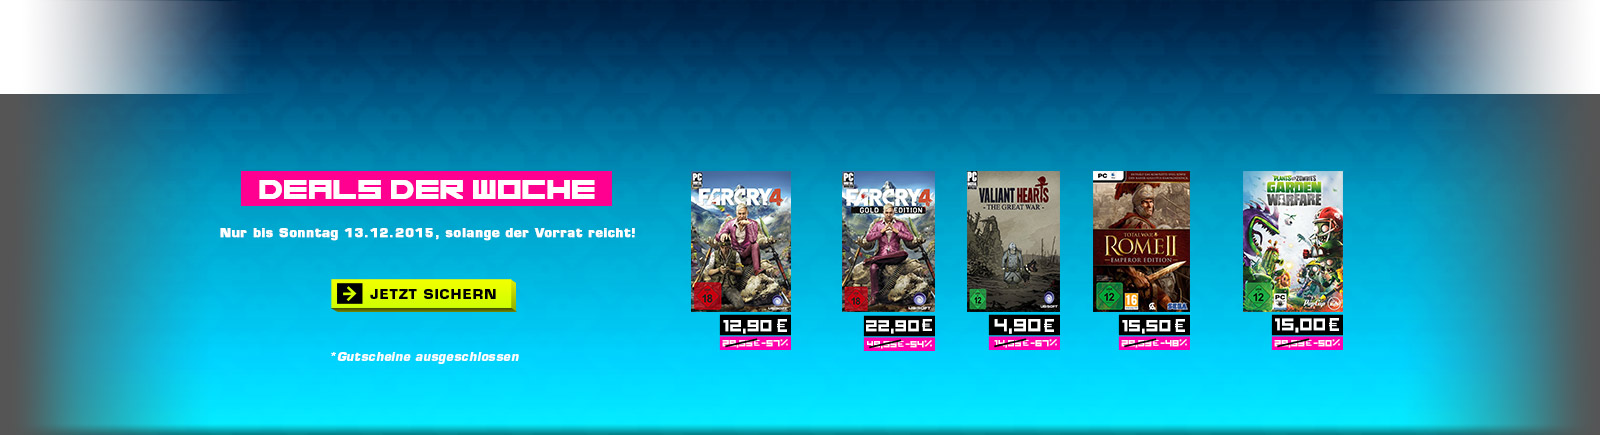 gratis spiele downloaden vollversion